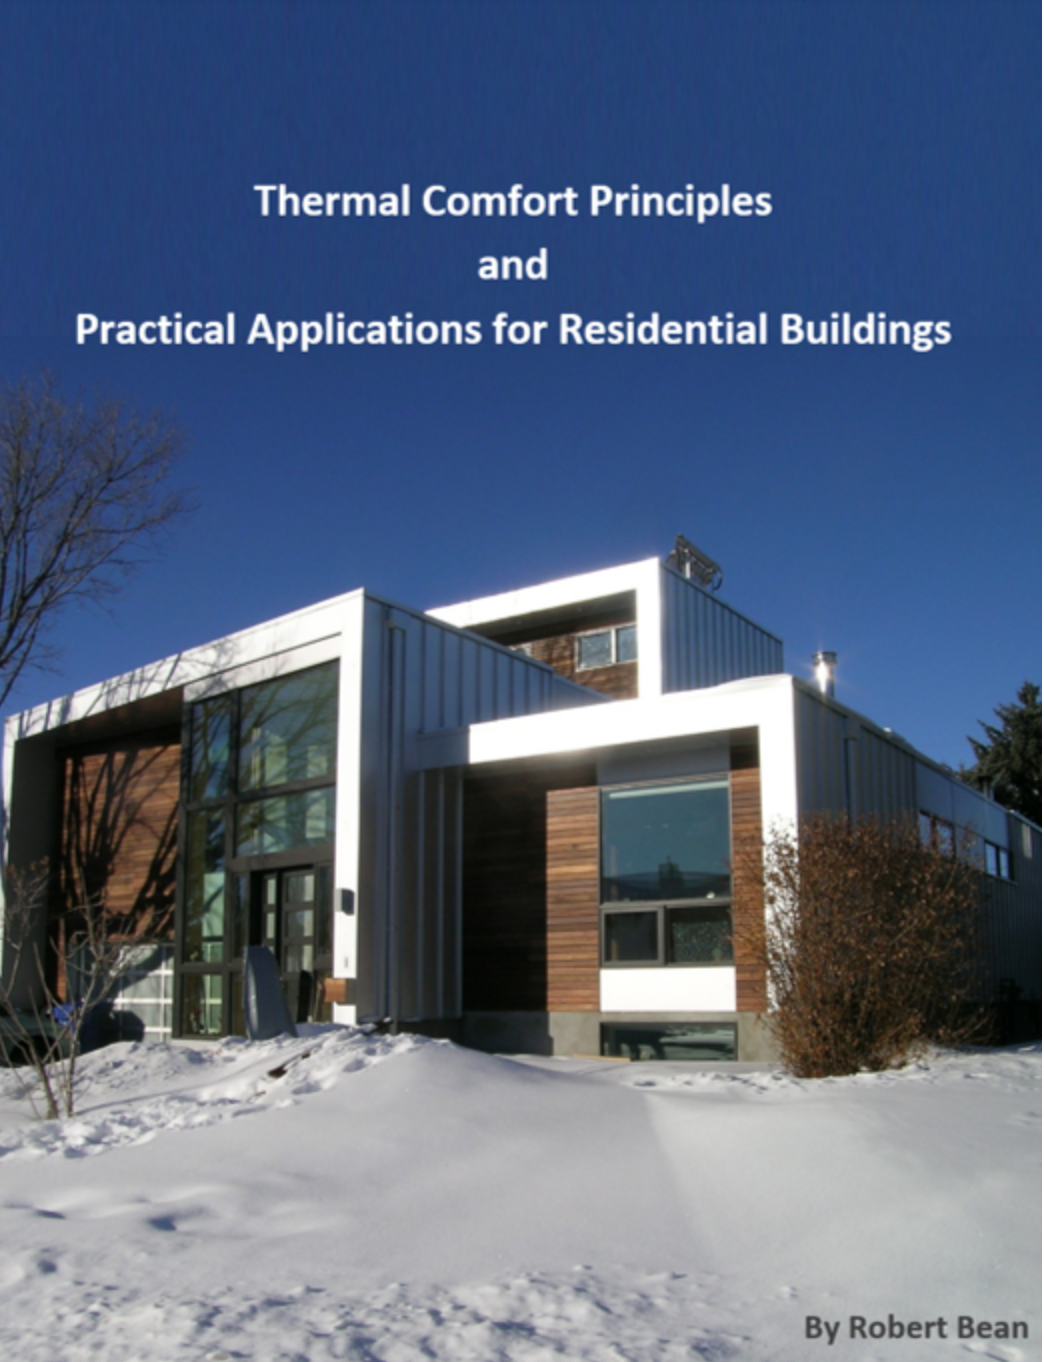 It's published and it's free, Thermal Comfort Principles and  Practical Applications for Residential Buildings